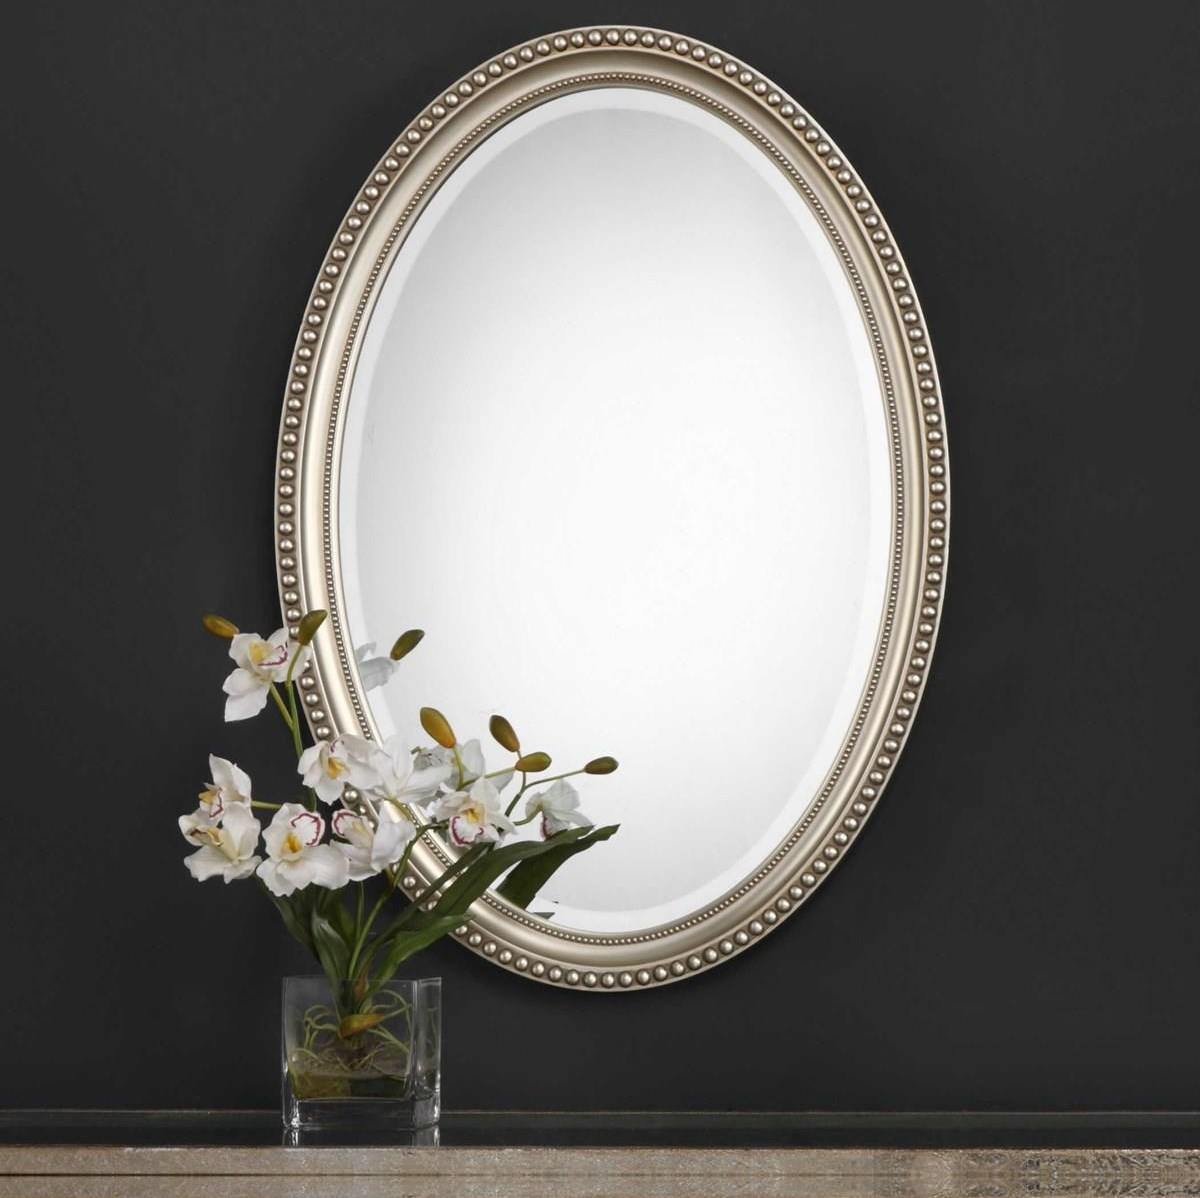 Mirrors - Oval CHARLOTTE MIRROR by Unique at Walker's Furniture